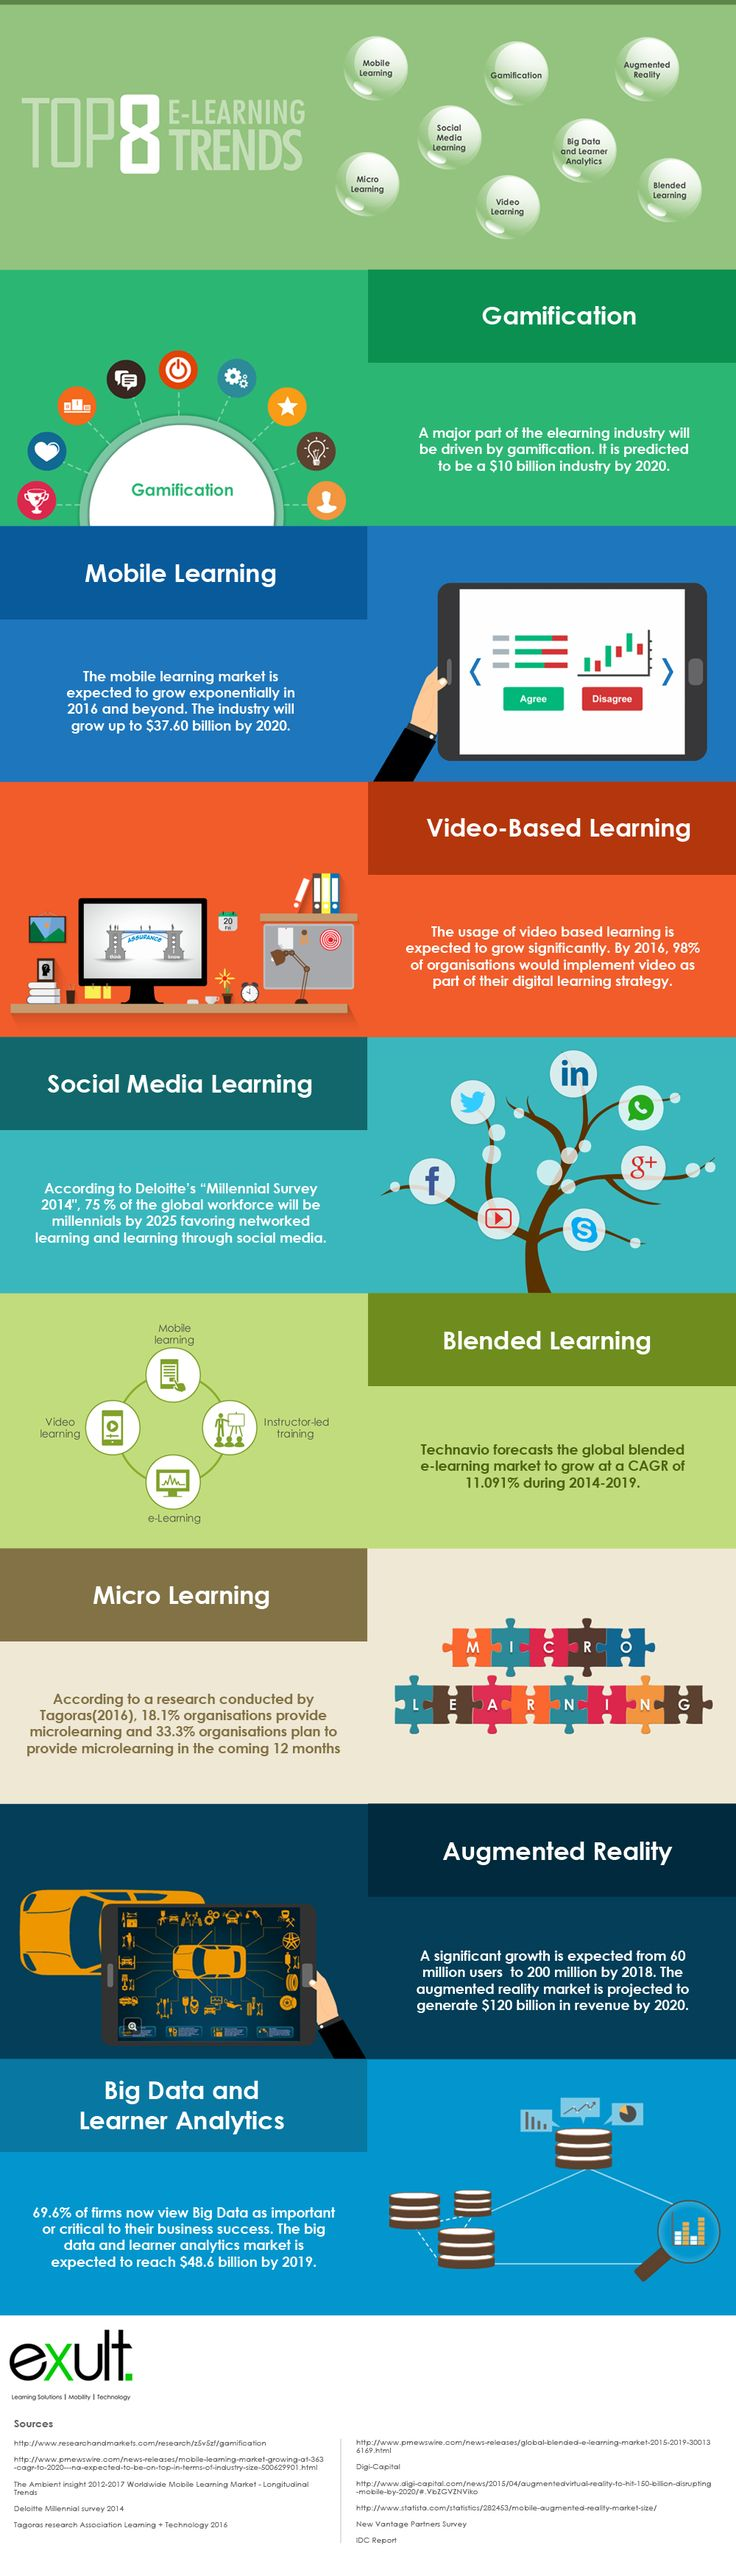 Top 8 eLearning Trends (Infographic)